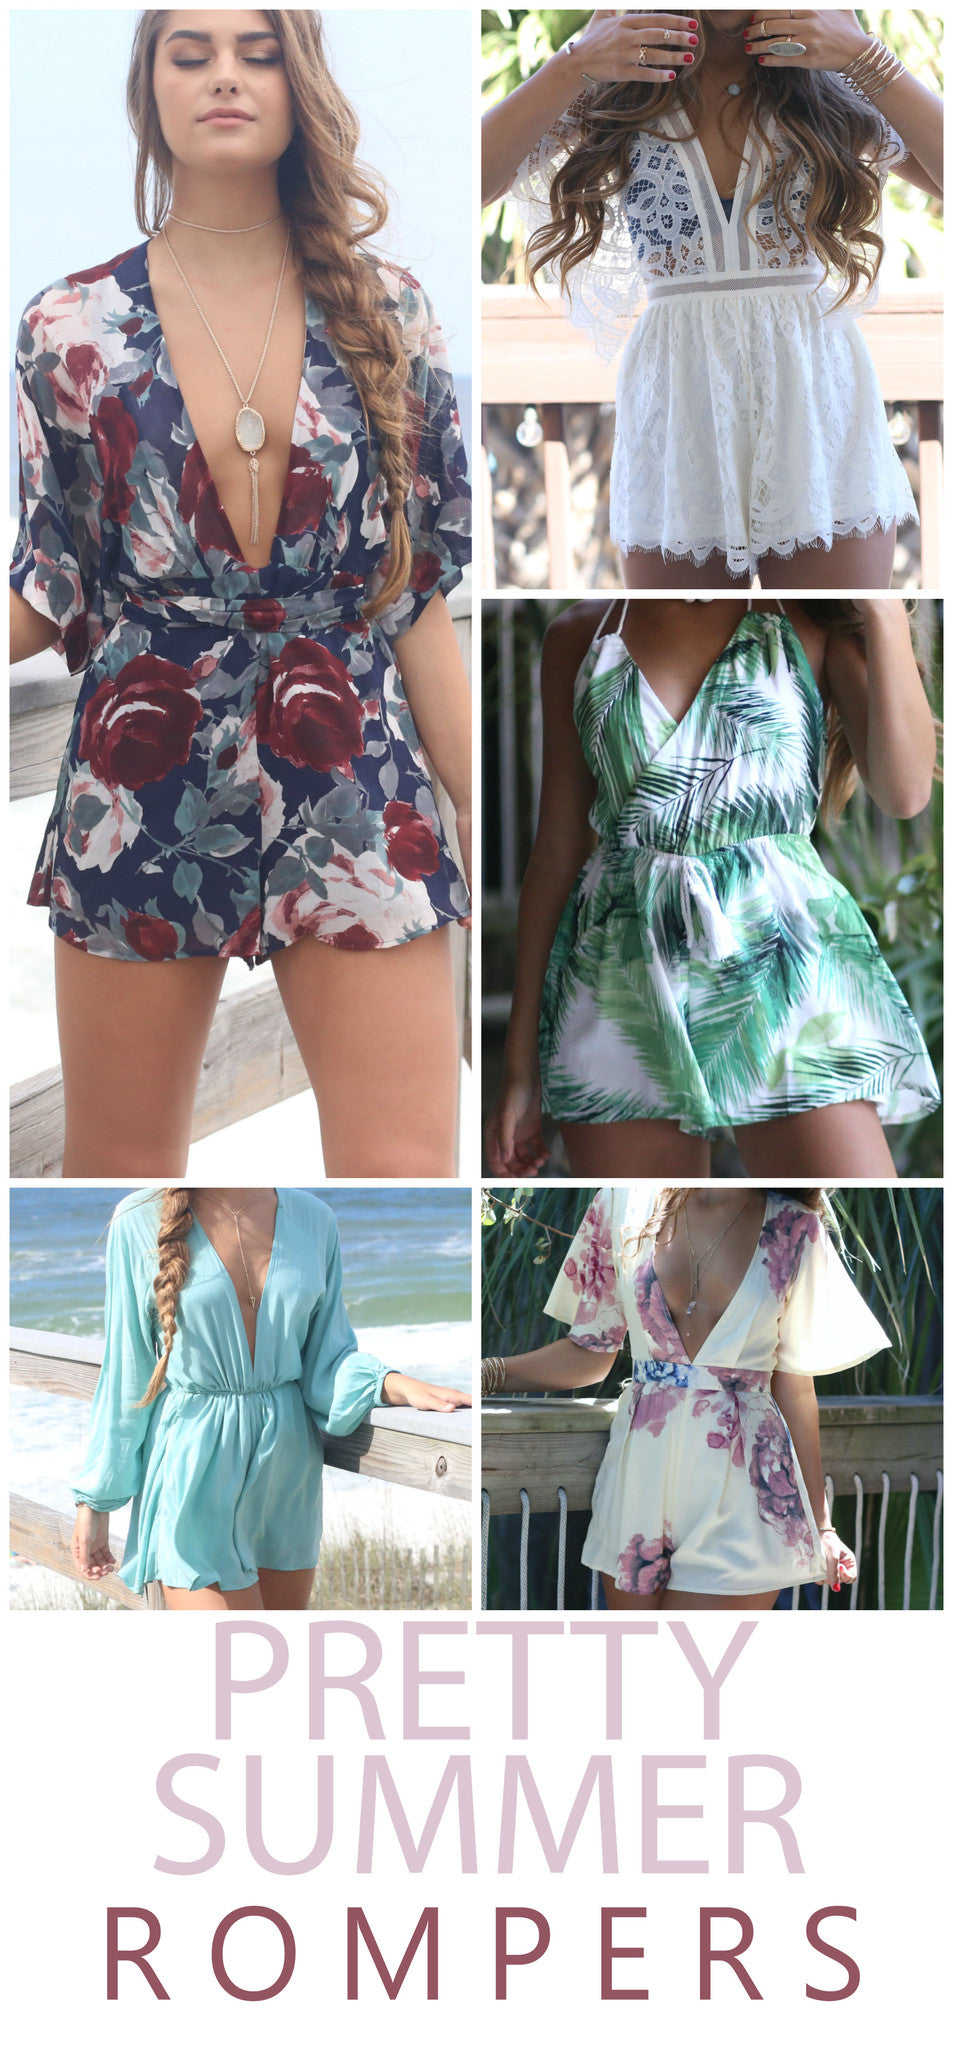 Pretty Summer Rompers